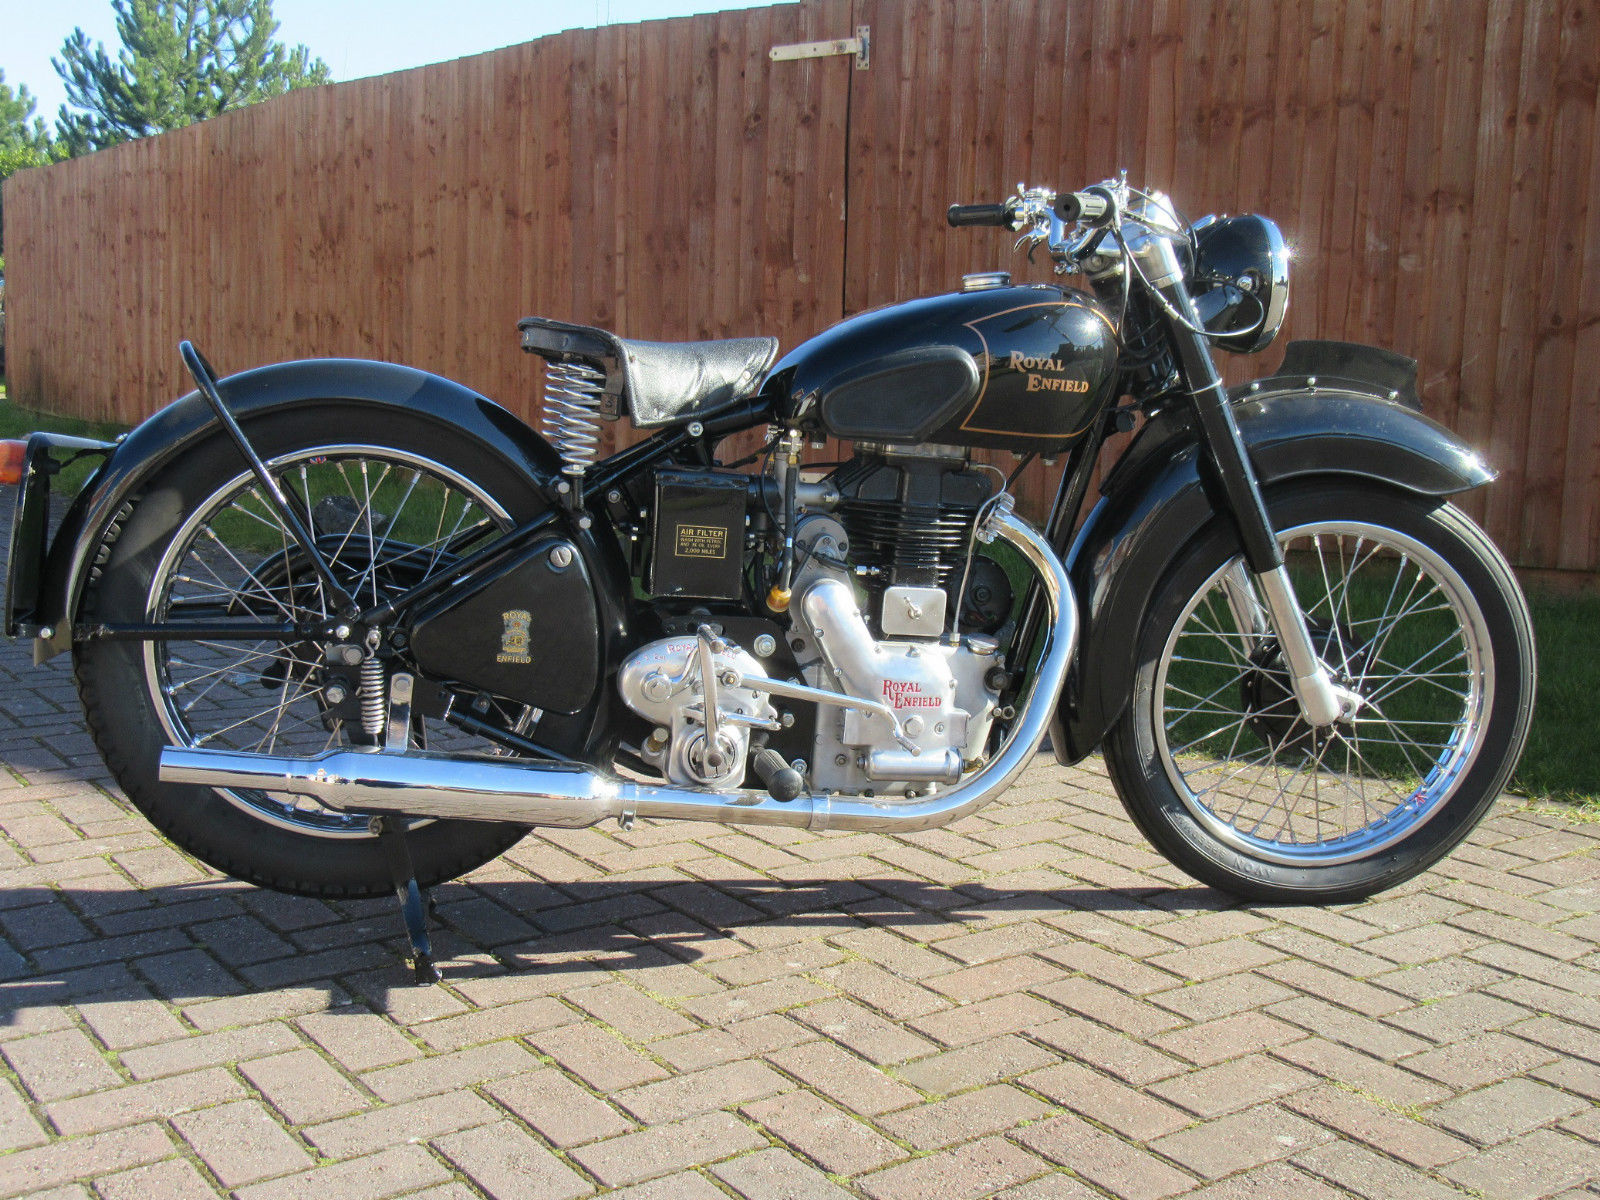 restored royal enfield model g 1950 photographs at classic bikes restored bikes restored. Black Bedroom Furniture Sets. Home Design Ideas